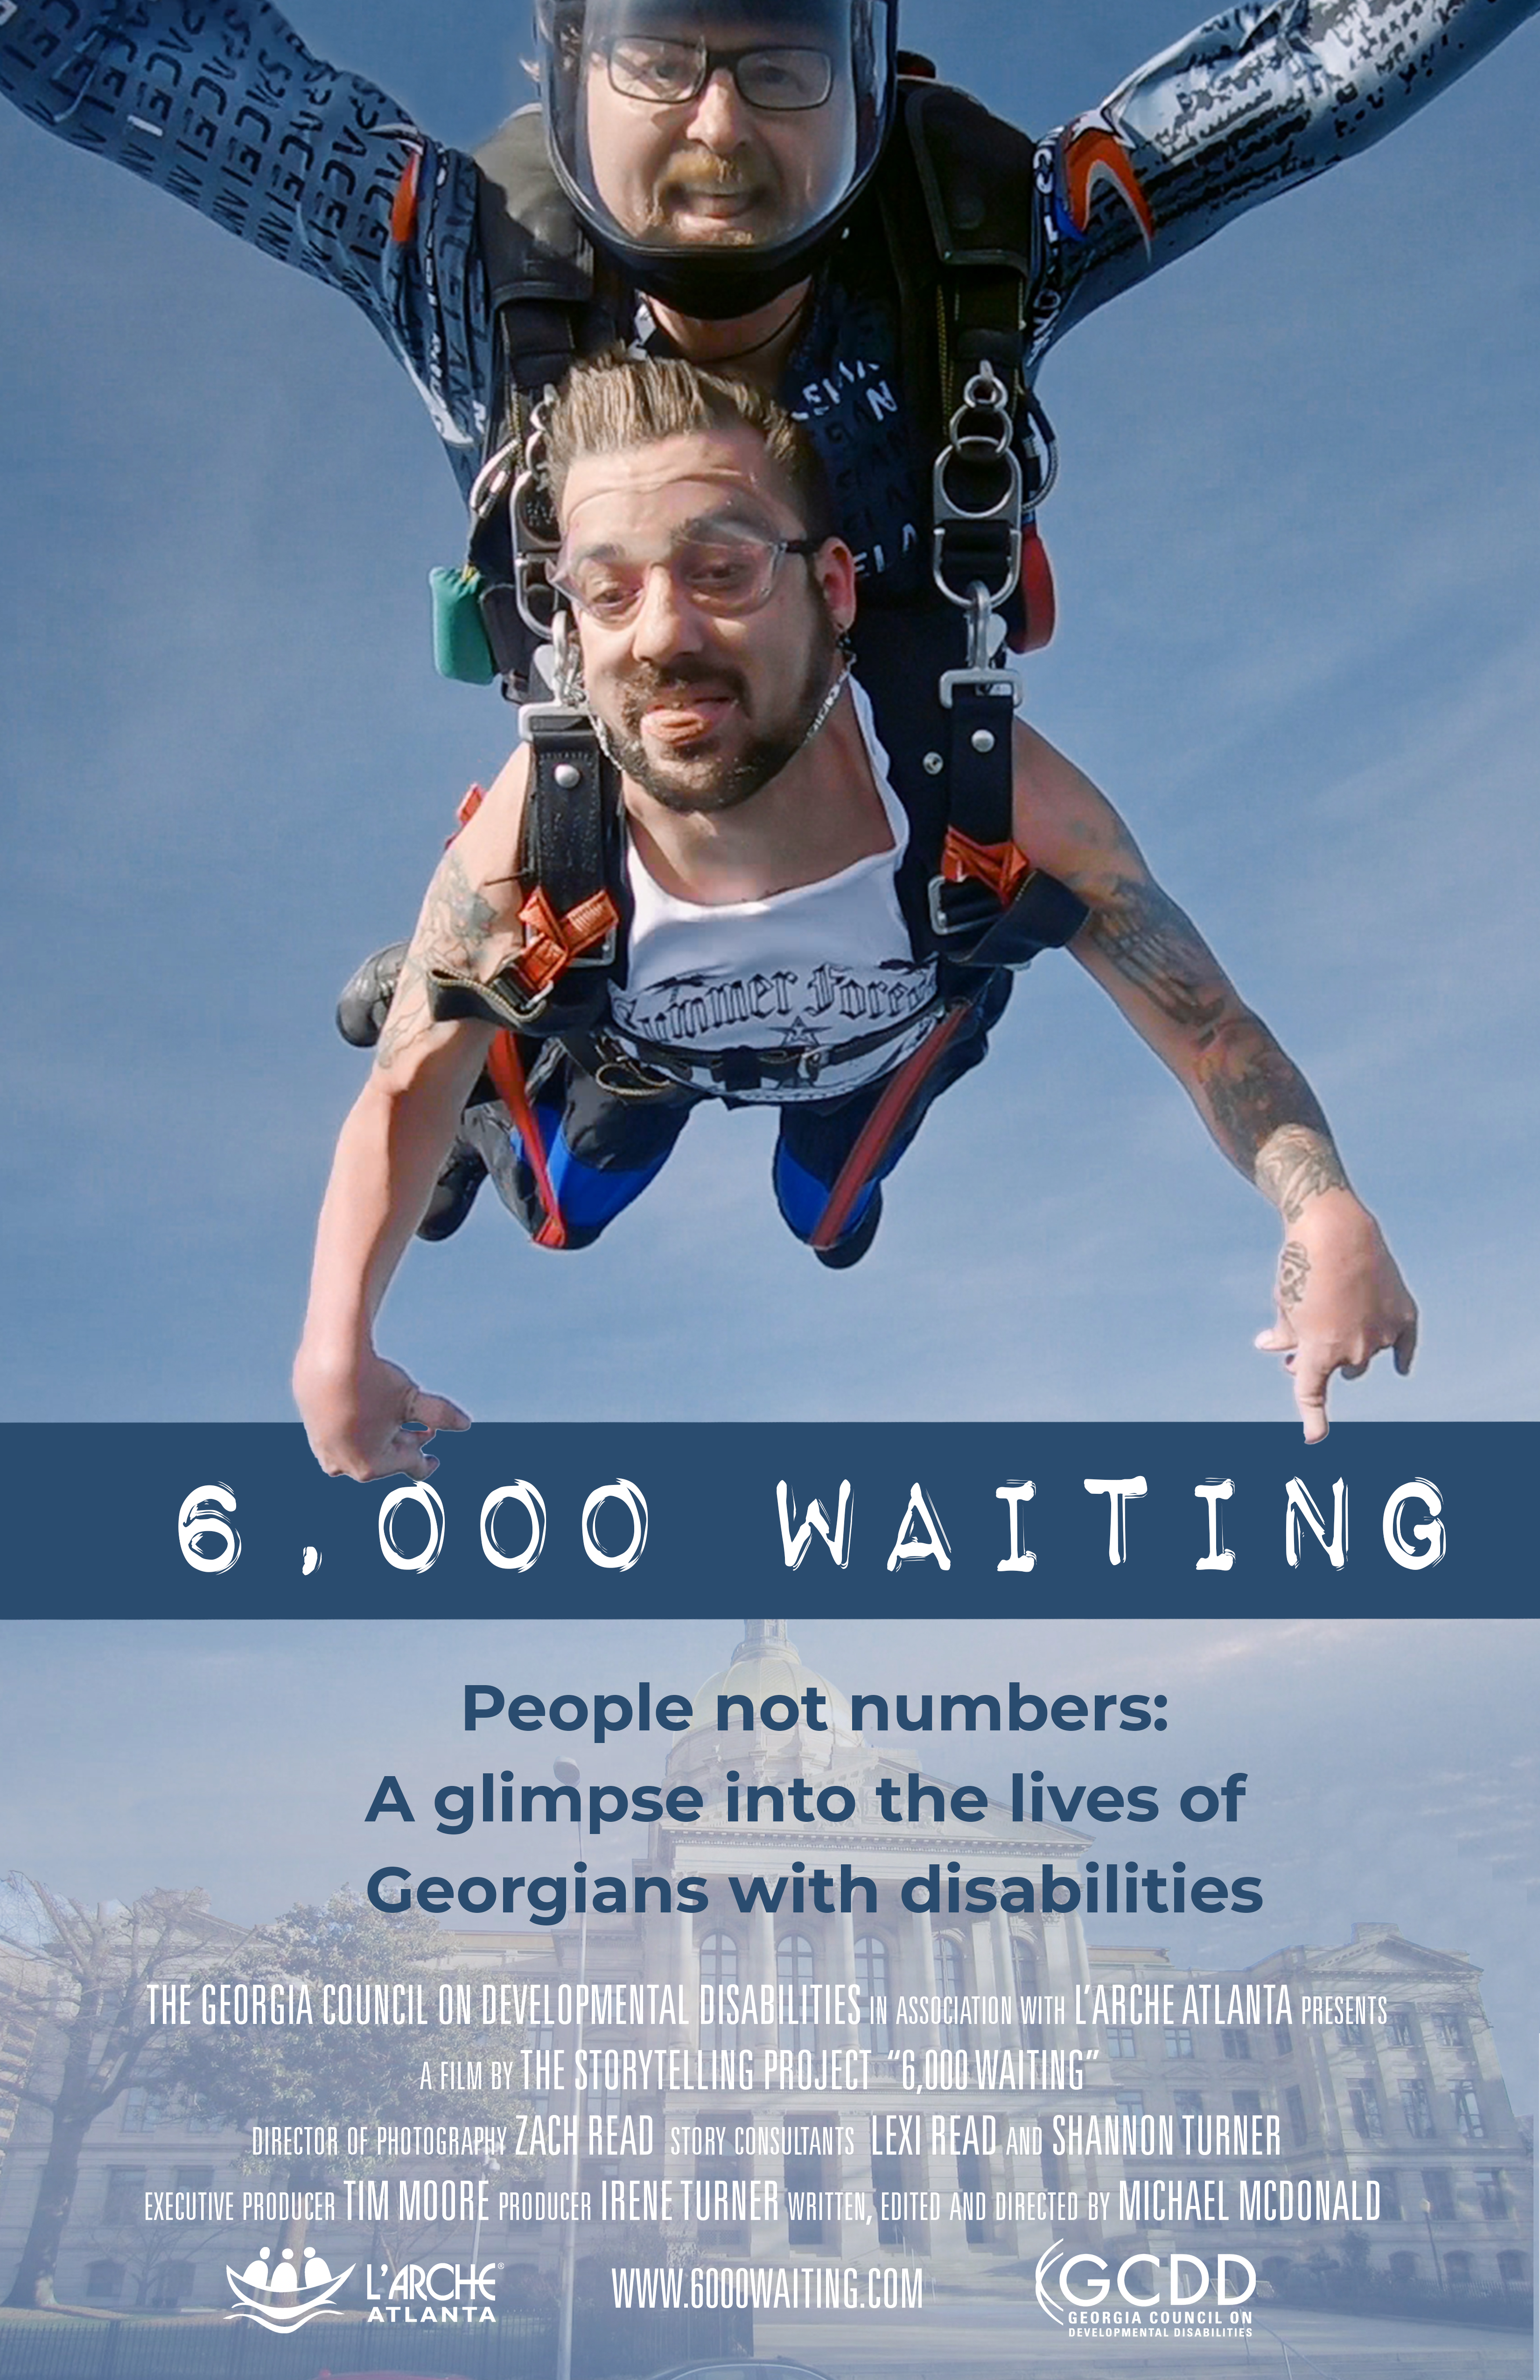 Poster for documentary 6000 Waiting. Two men tethered together skydiving, one with a disability